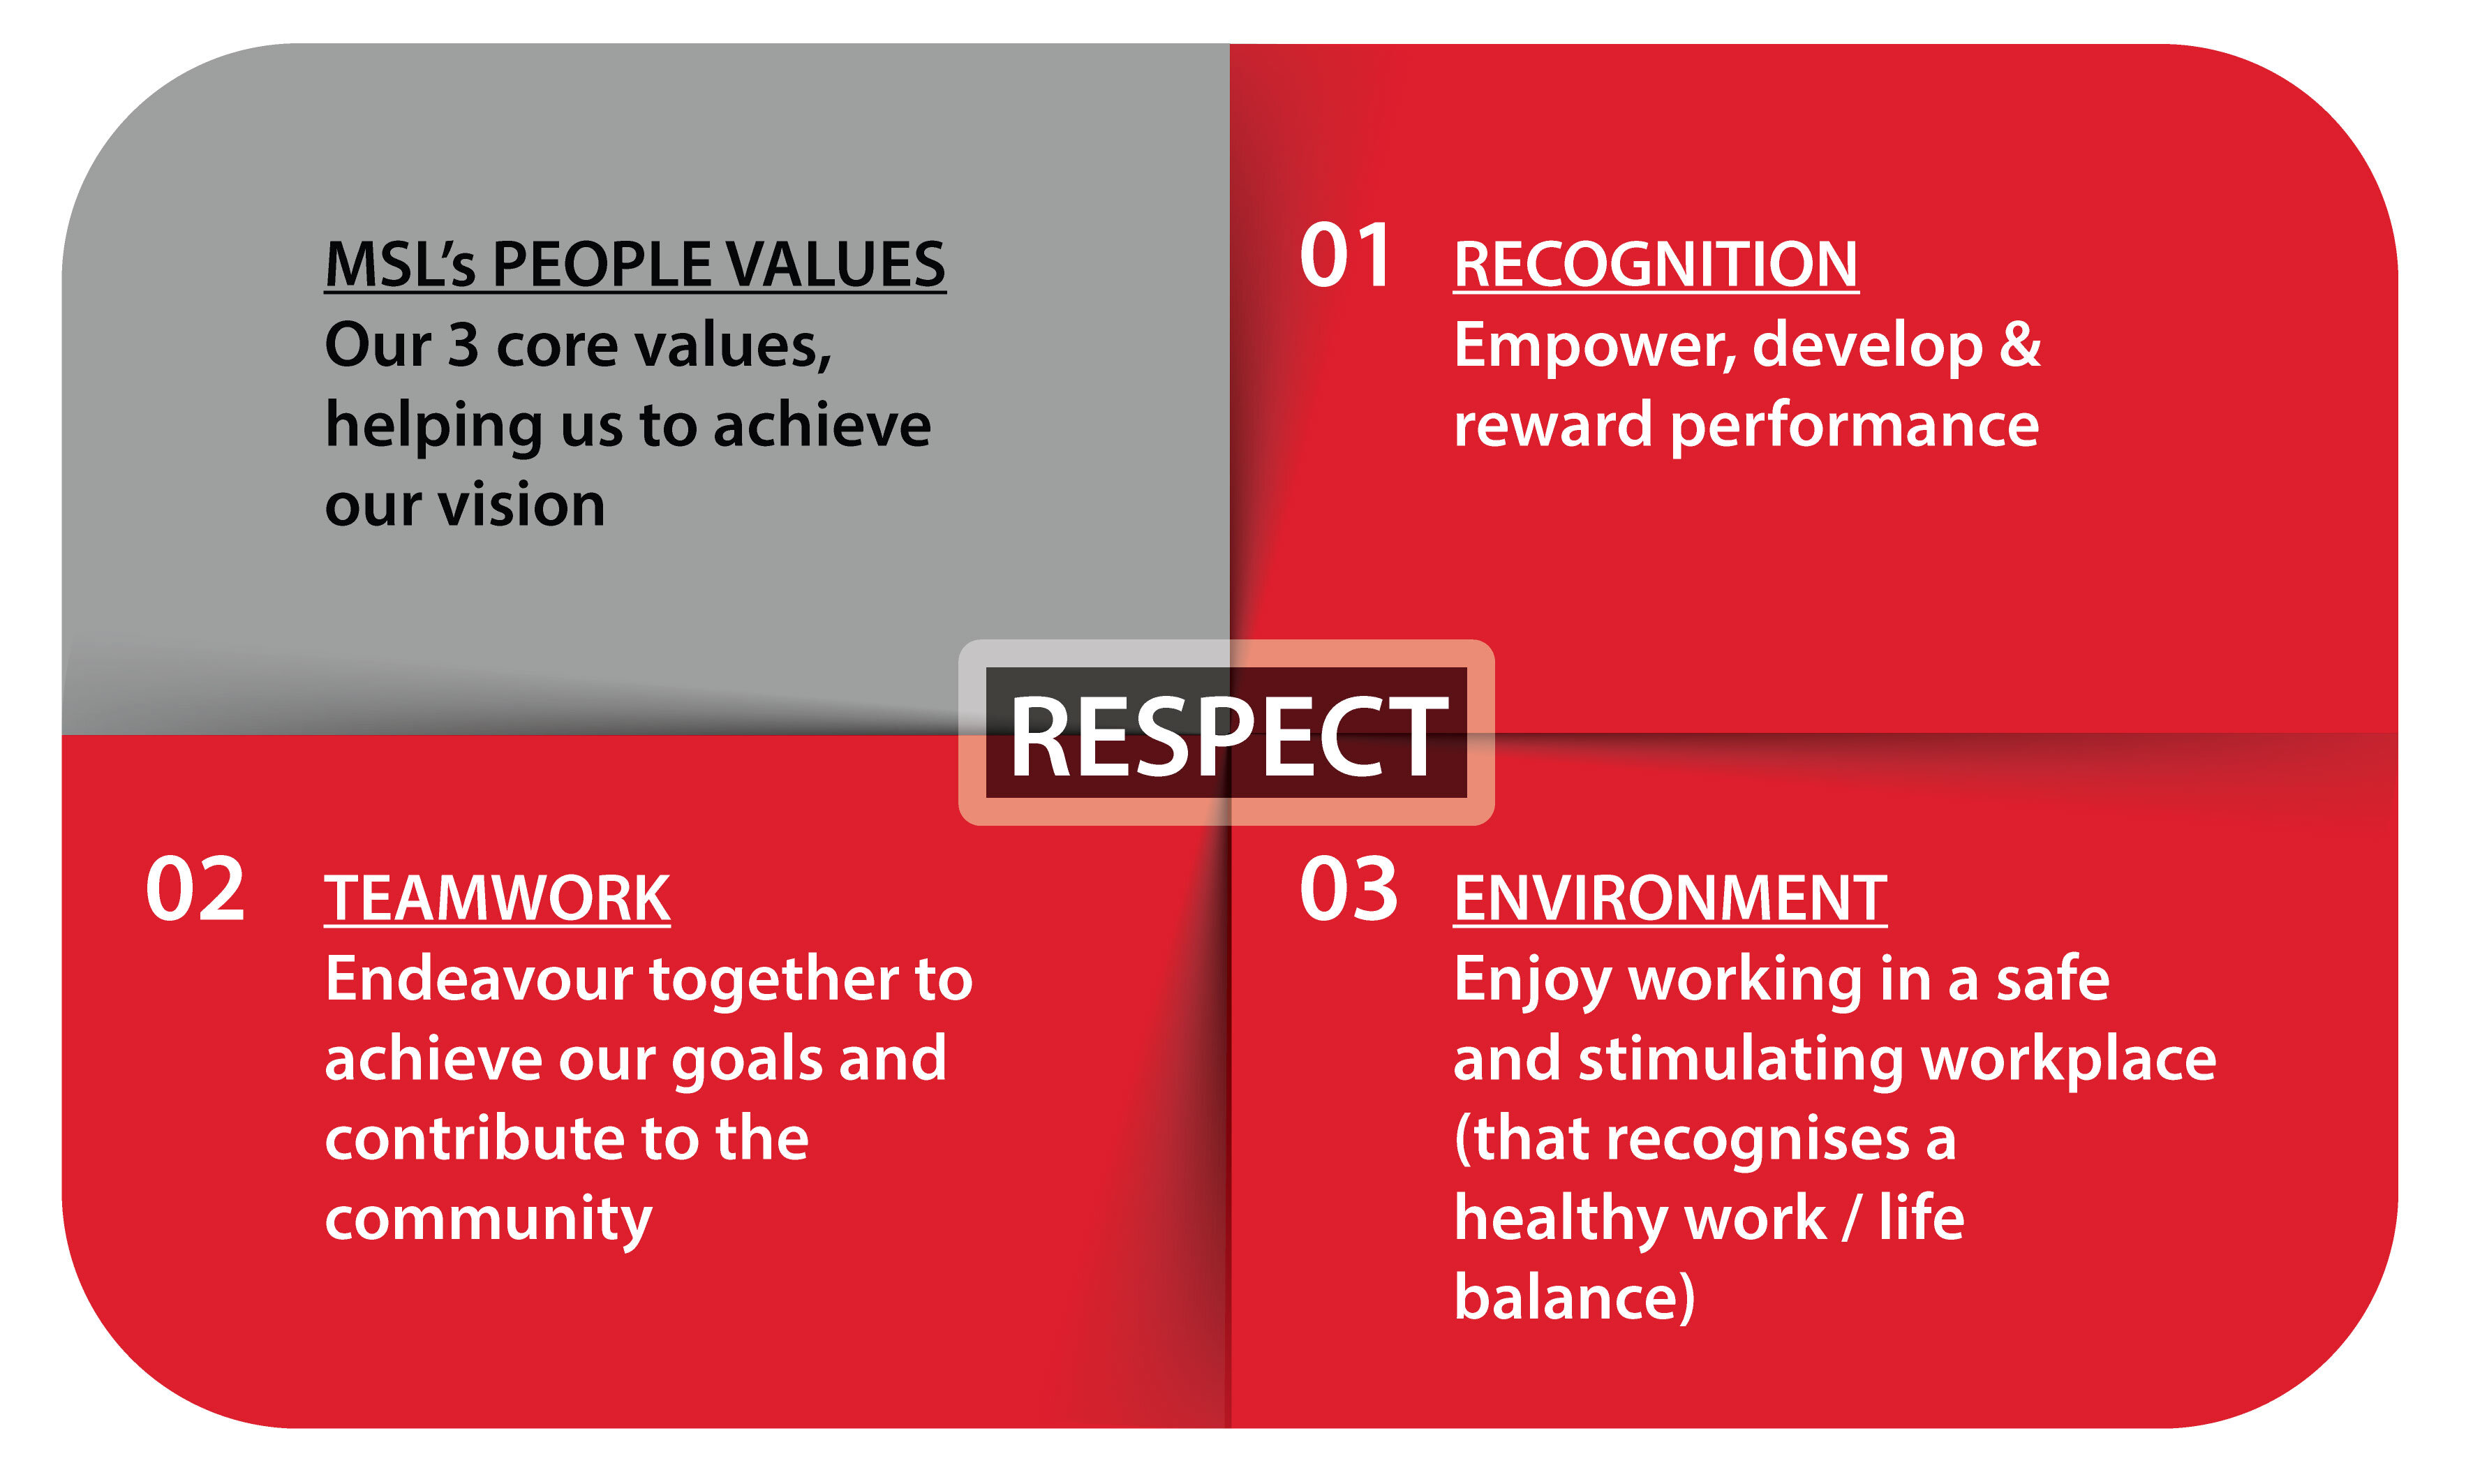 we are committed to achieving our vision on a daily basis msl we are committed to working towards achieving our vision by adhering to our people values on a daily basis just to make sure that this has not just been an